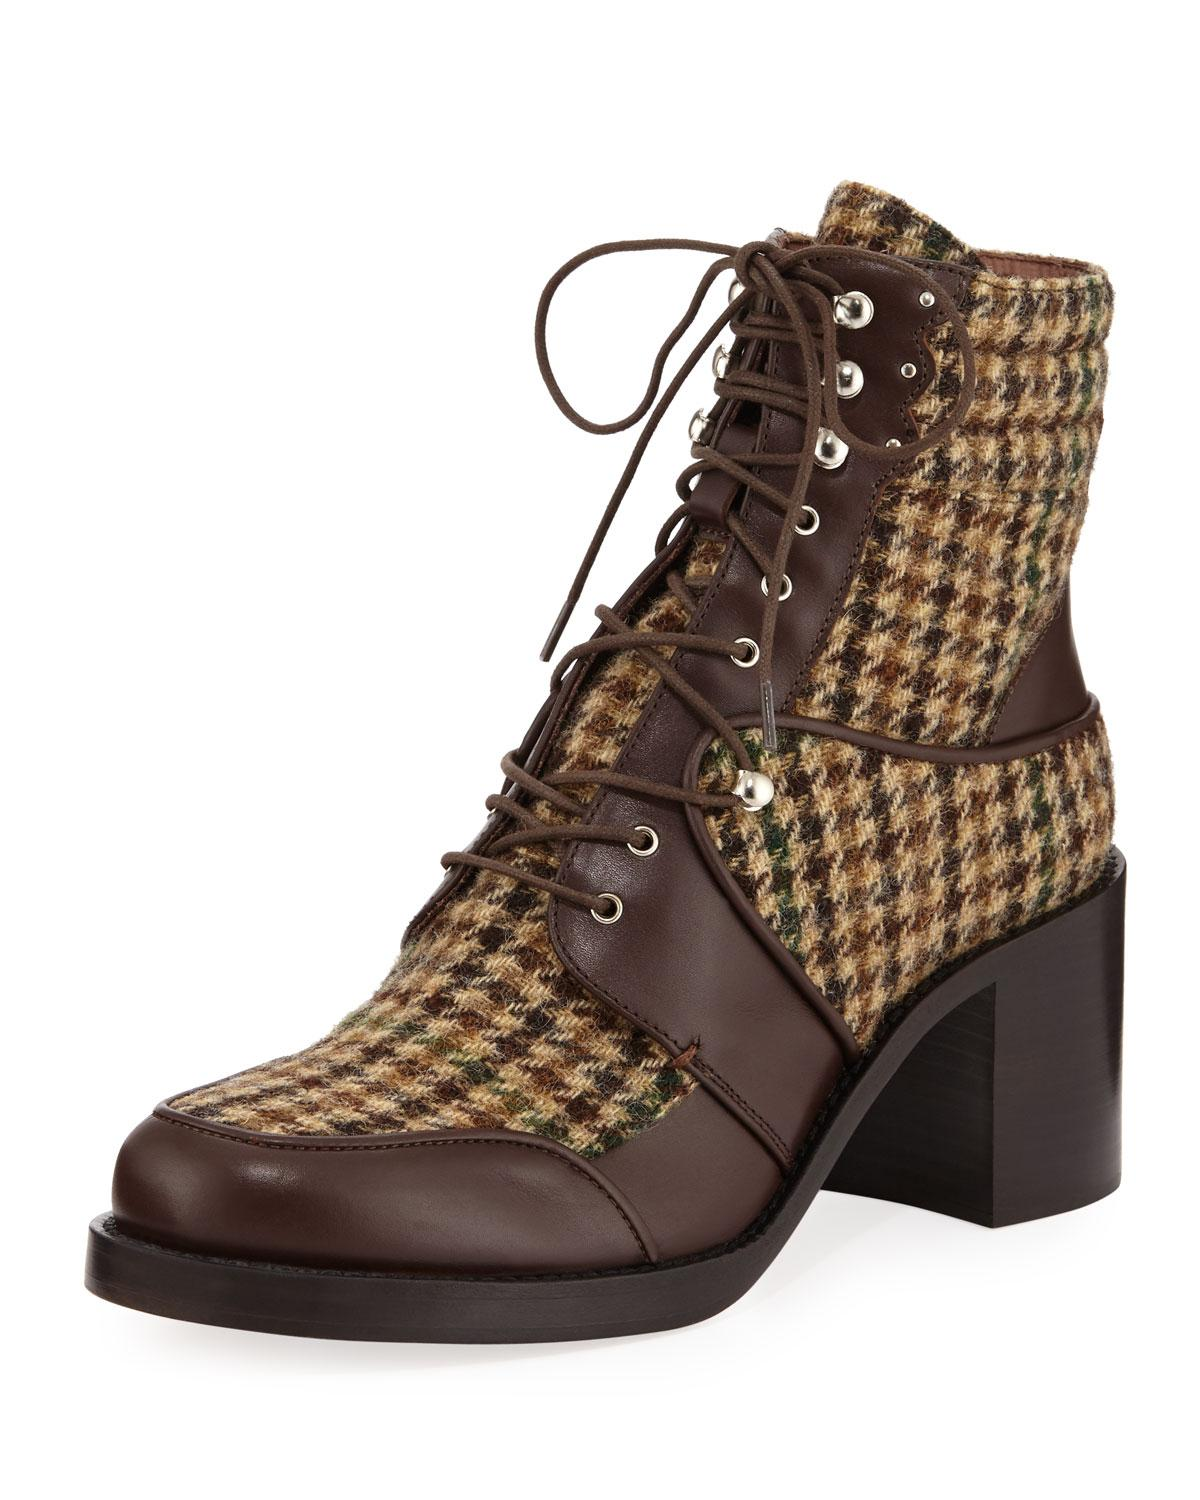 274c812597b9 Tabitha Simmons Leo Houndstooth Lace-Up Mixed Booties In Green Tweed Brown